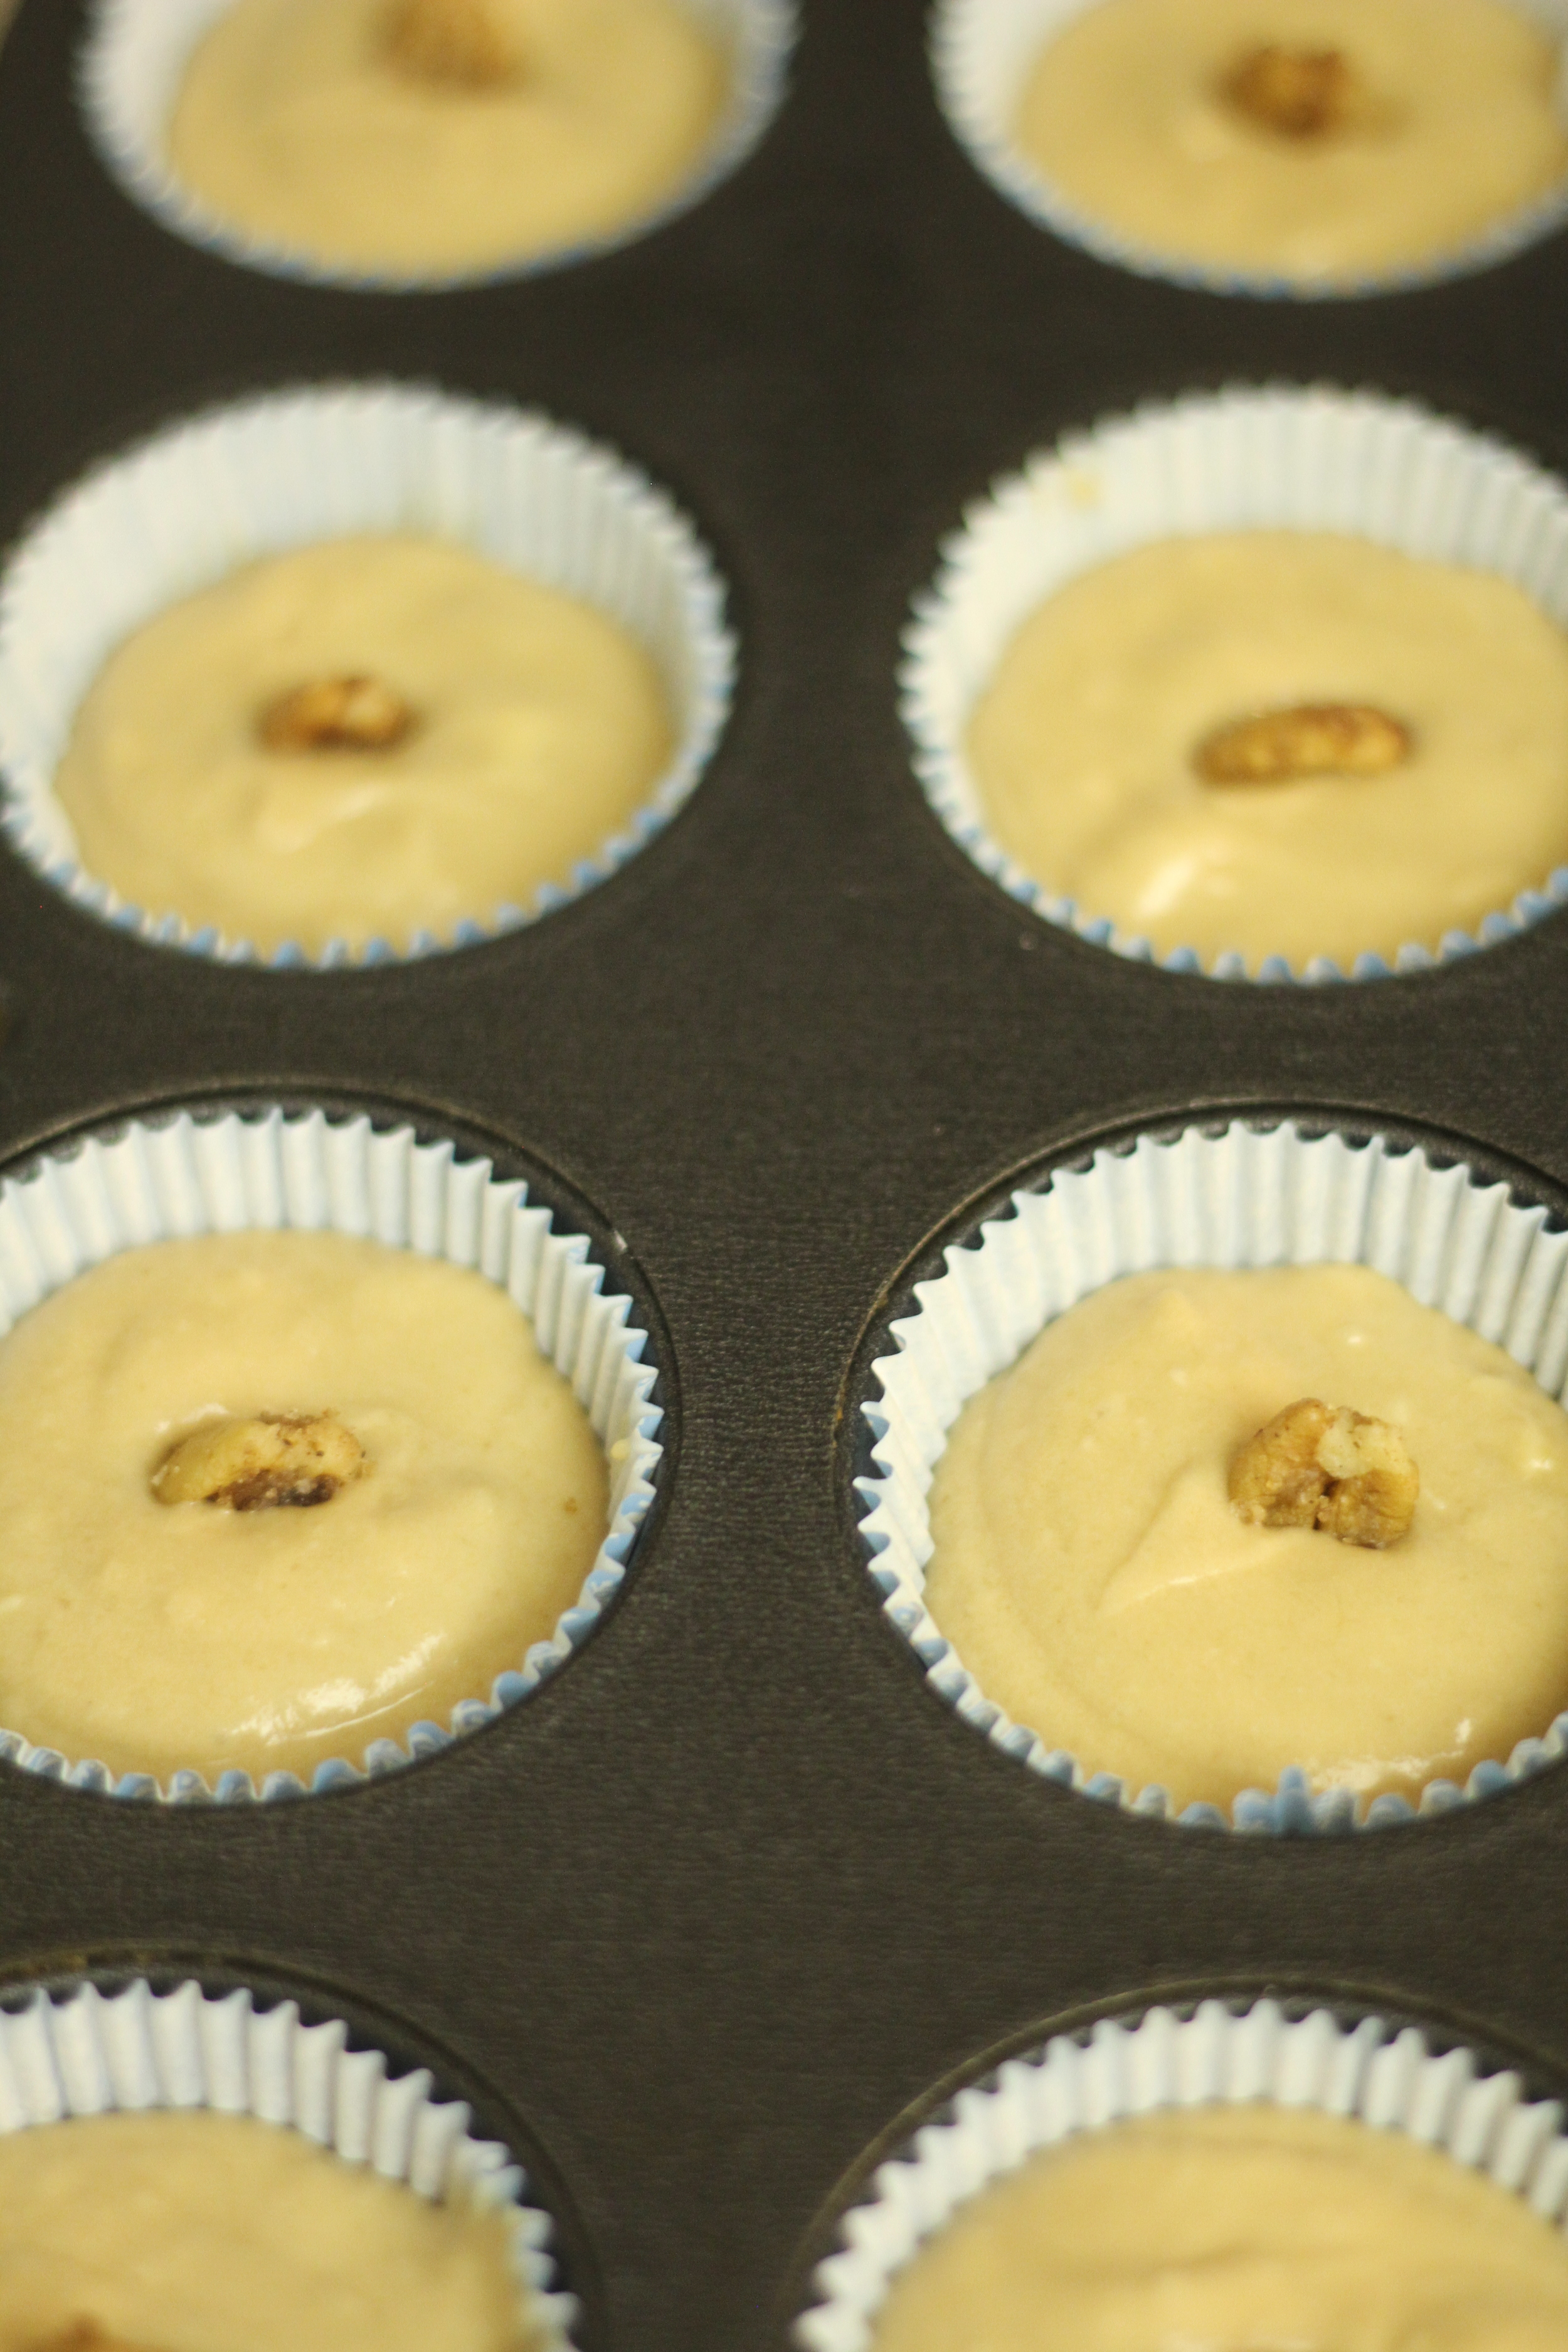 Pre-baked cupcakes with candied pecans.